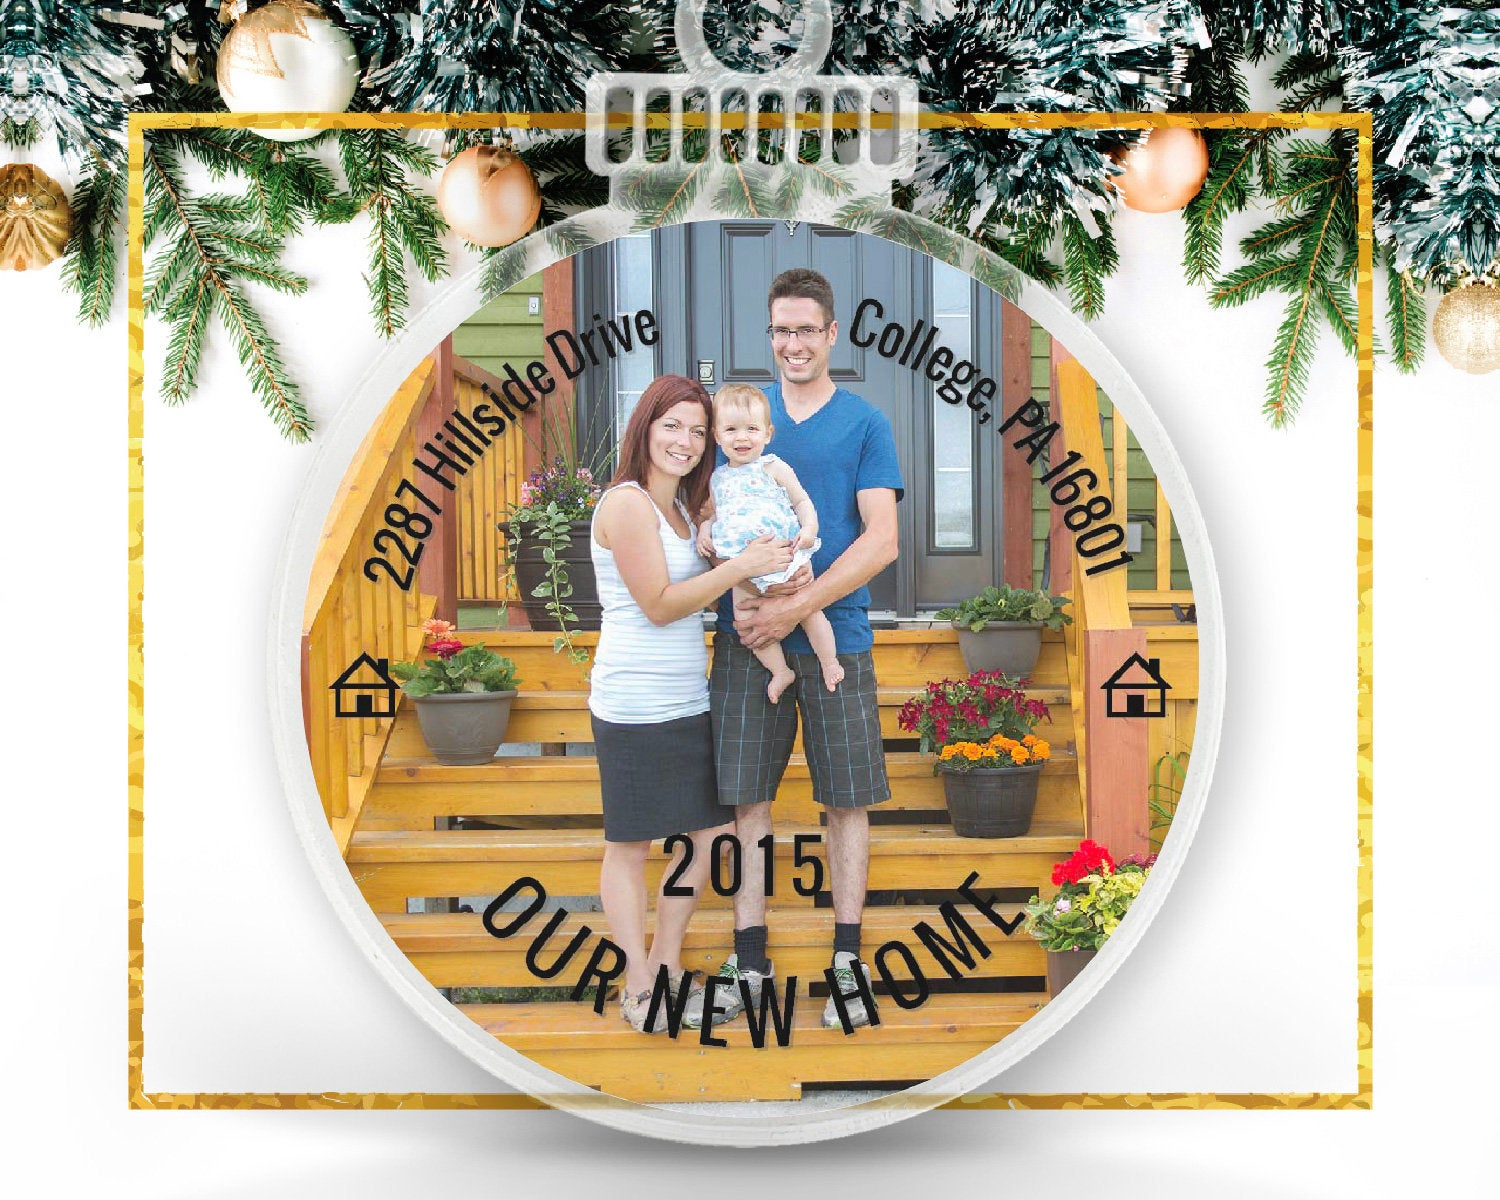 New Home Personalized Photo Ornament